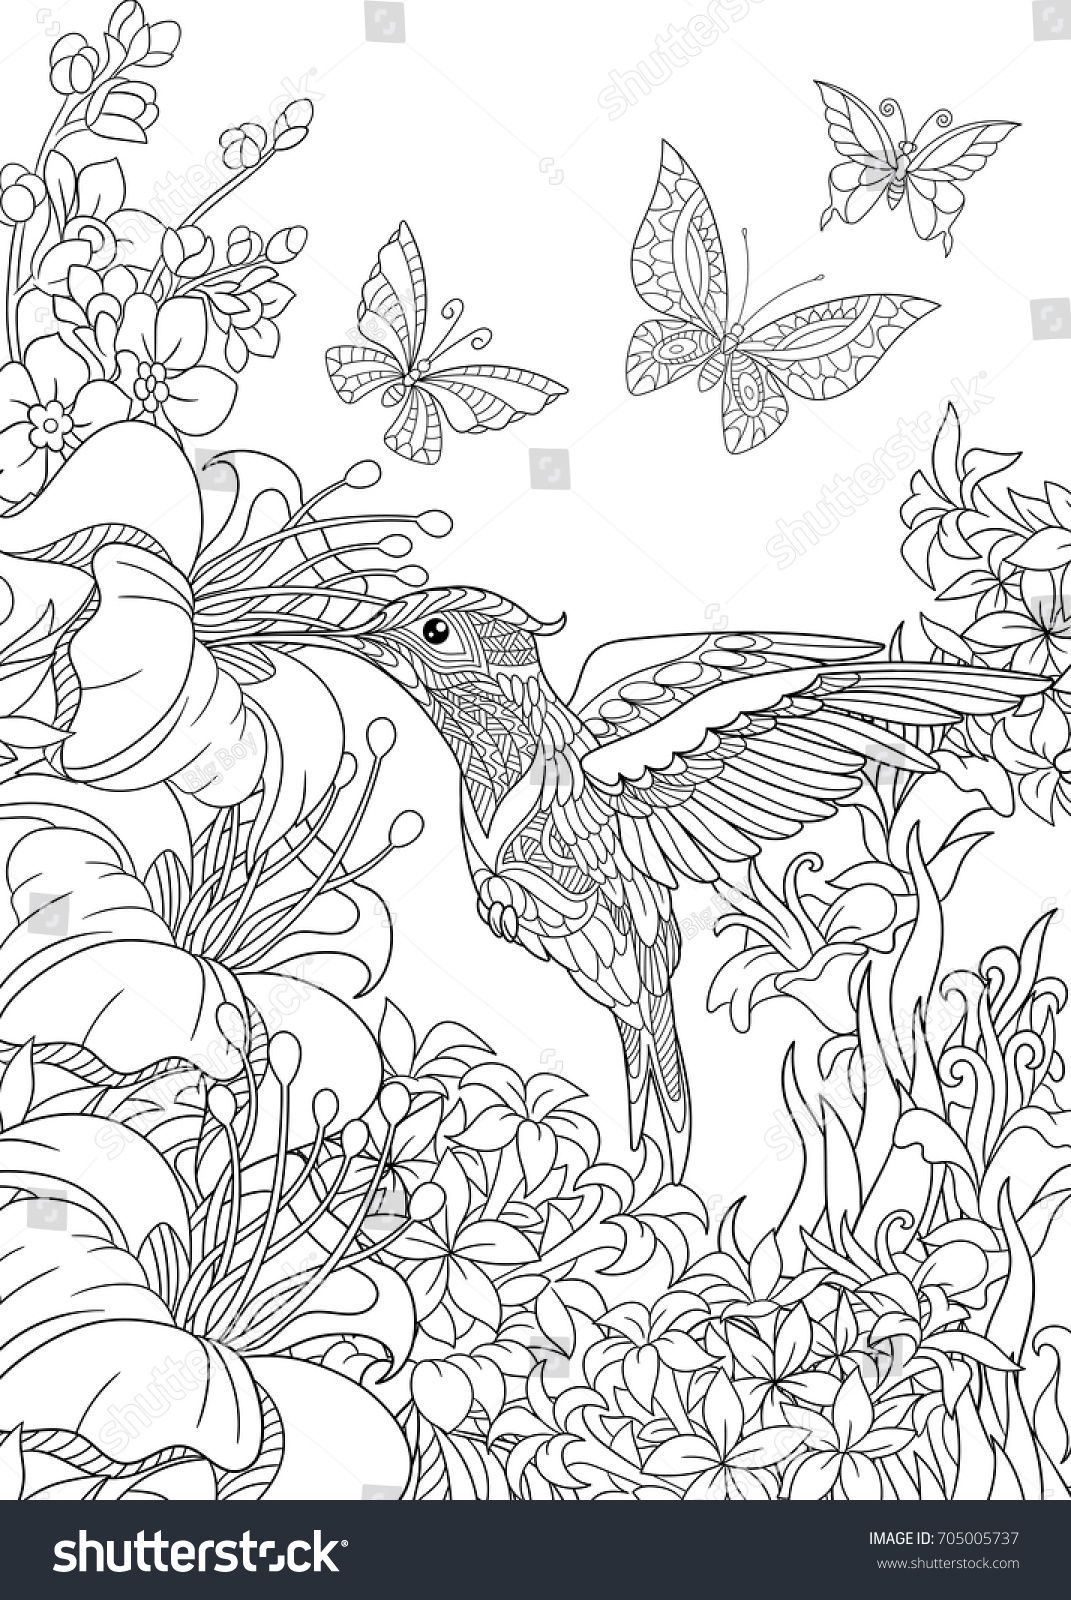 Coloring Page Of Hummingbird Butterflies And Hibiscus Flowers